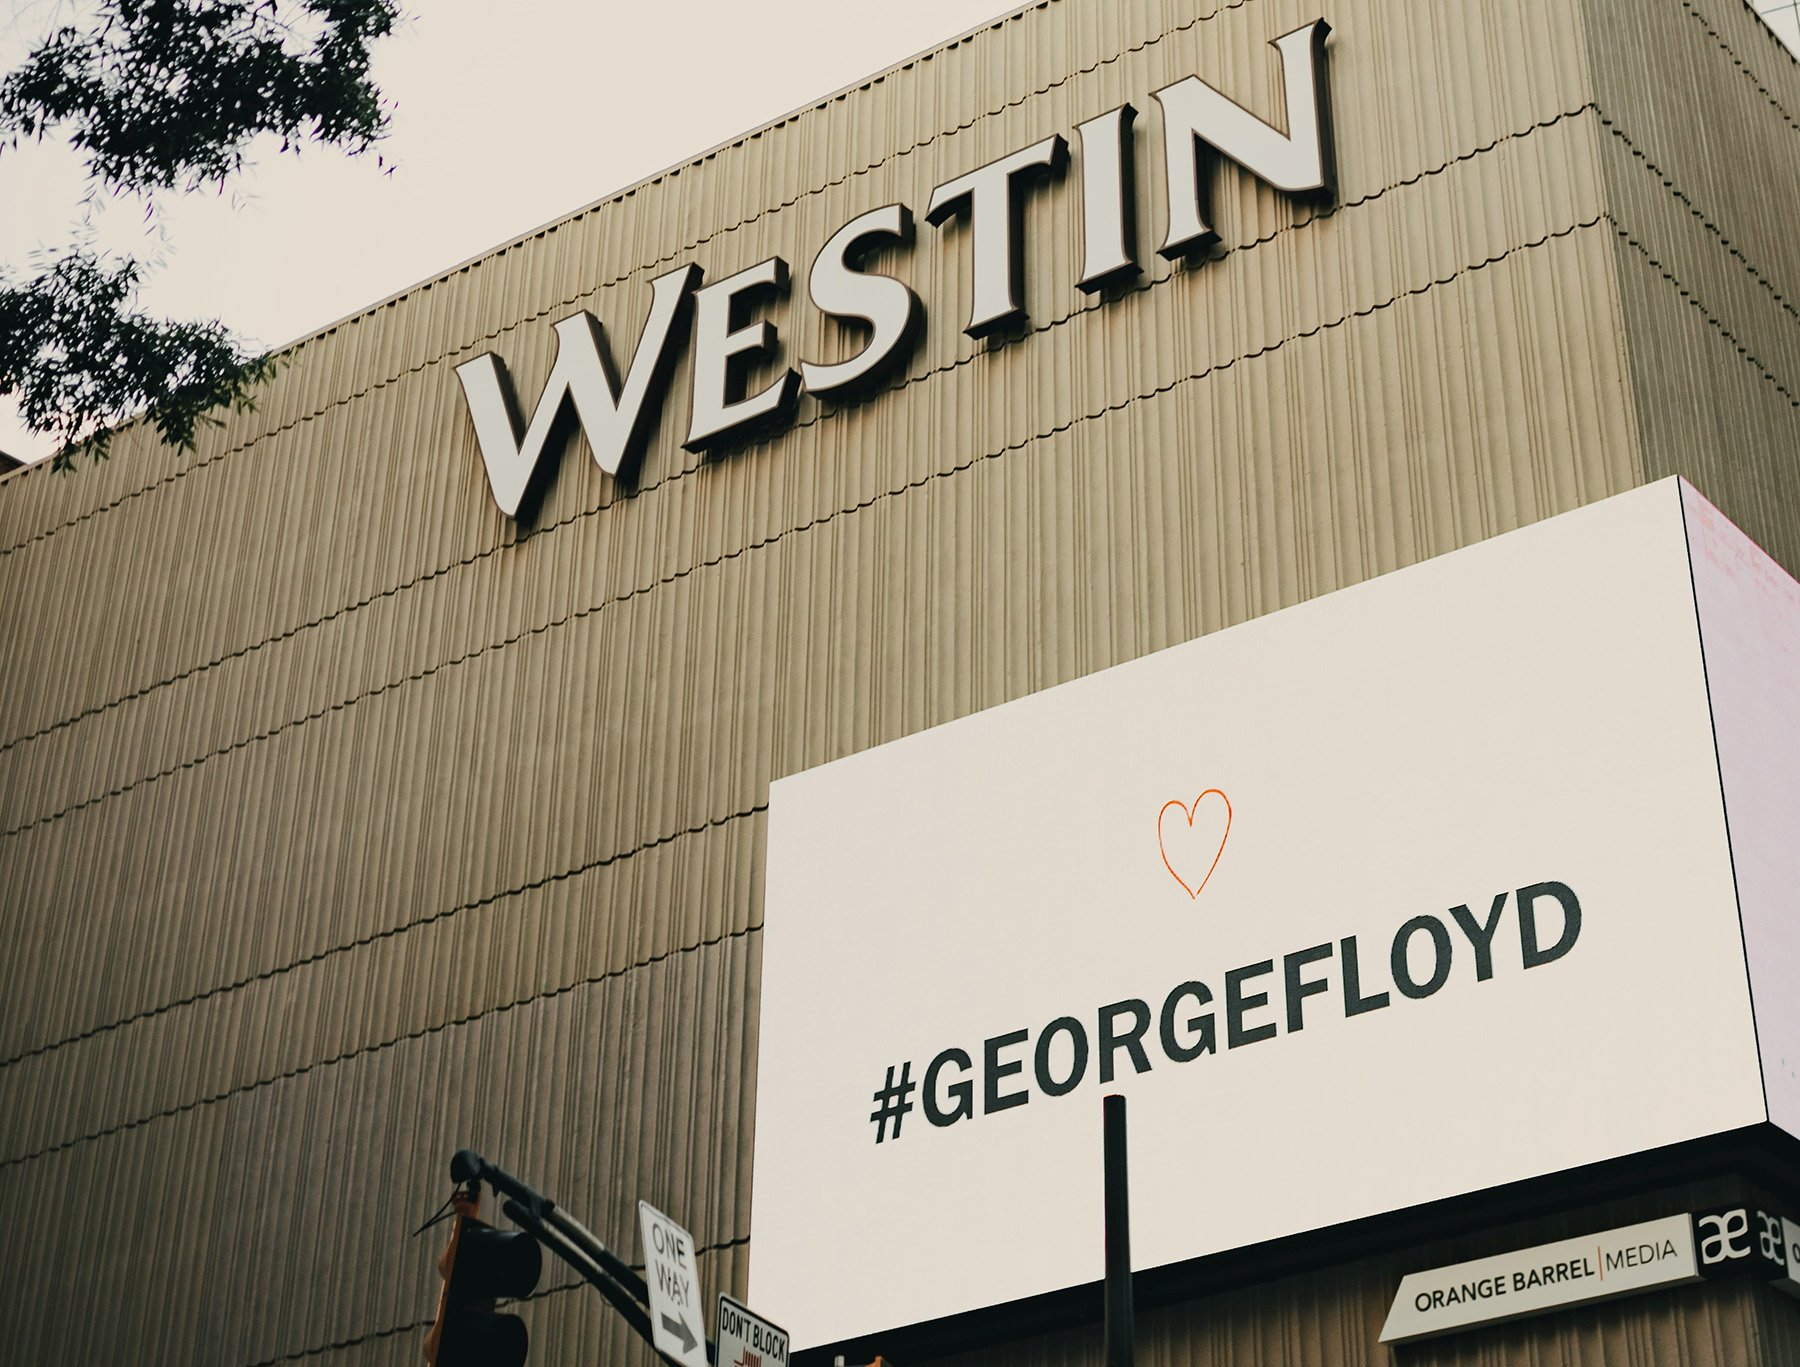 A Westin hotel shows a sign with a #GeorgeFloyd hashtag.